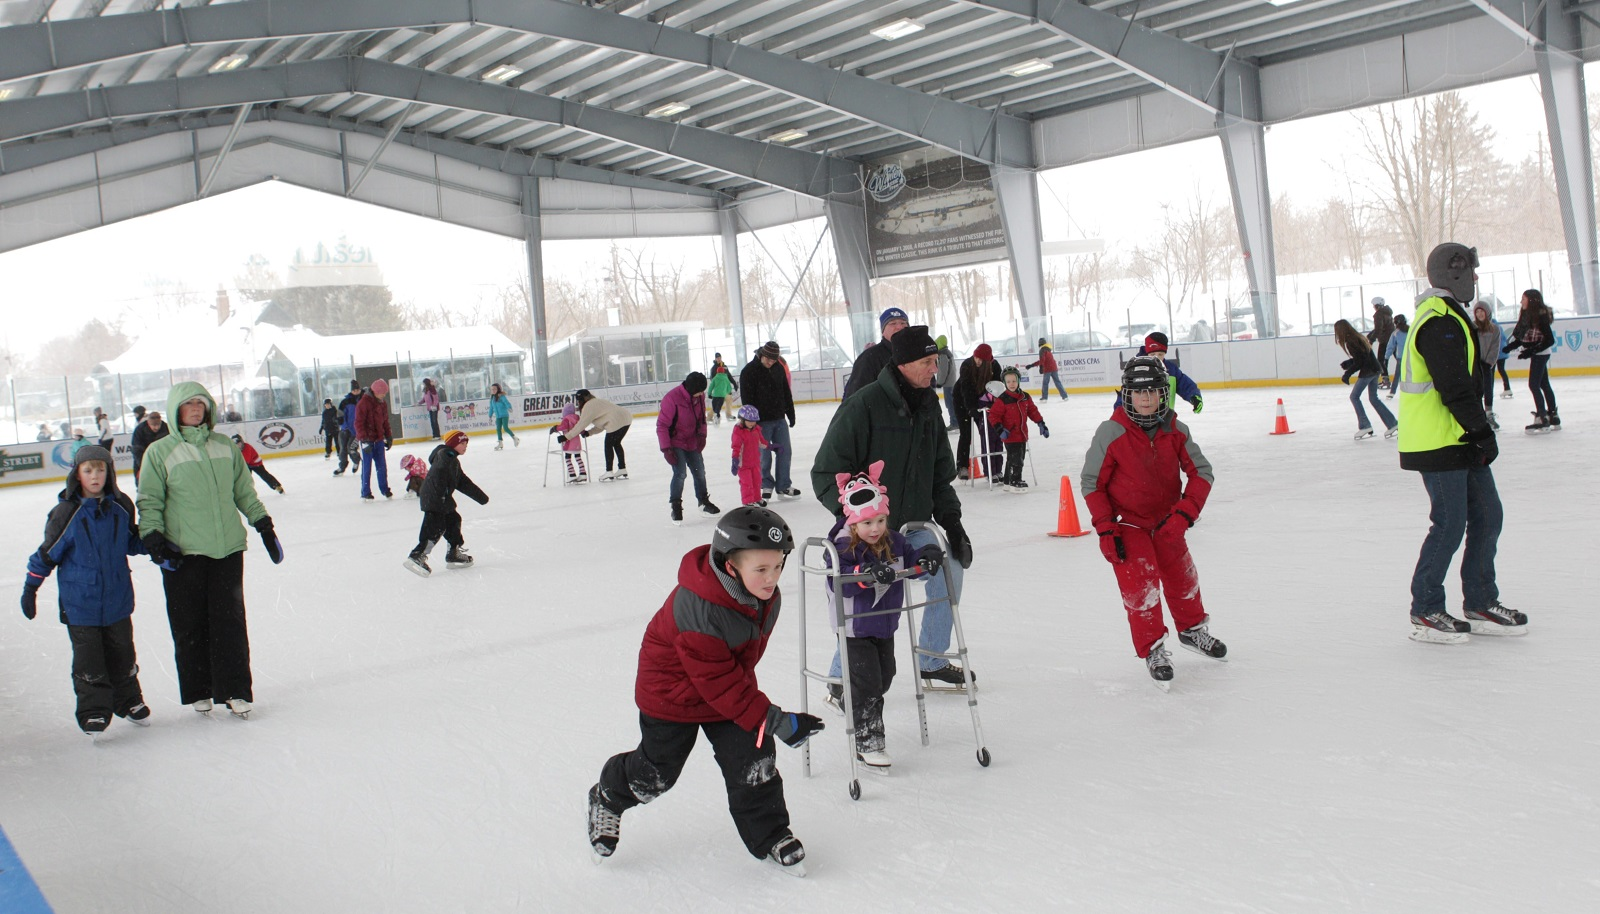 The Healthy Zone Rink in East Aurora will host a special Friday afternoon skate this week, the last week it will host public skating sessions this winter season. (Sharon Cantillon/News file photo)